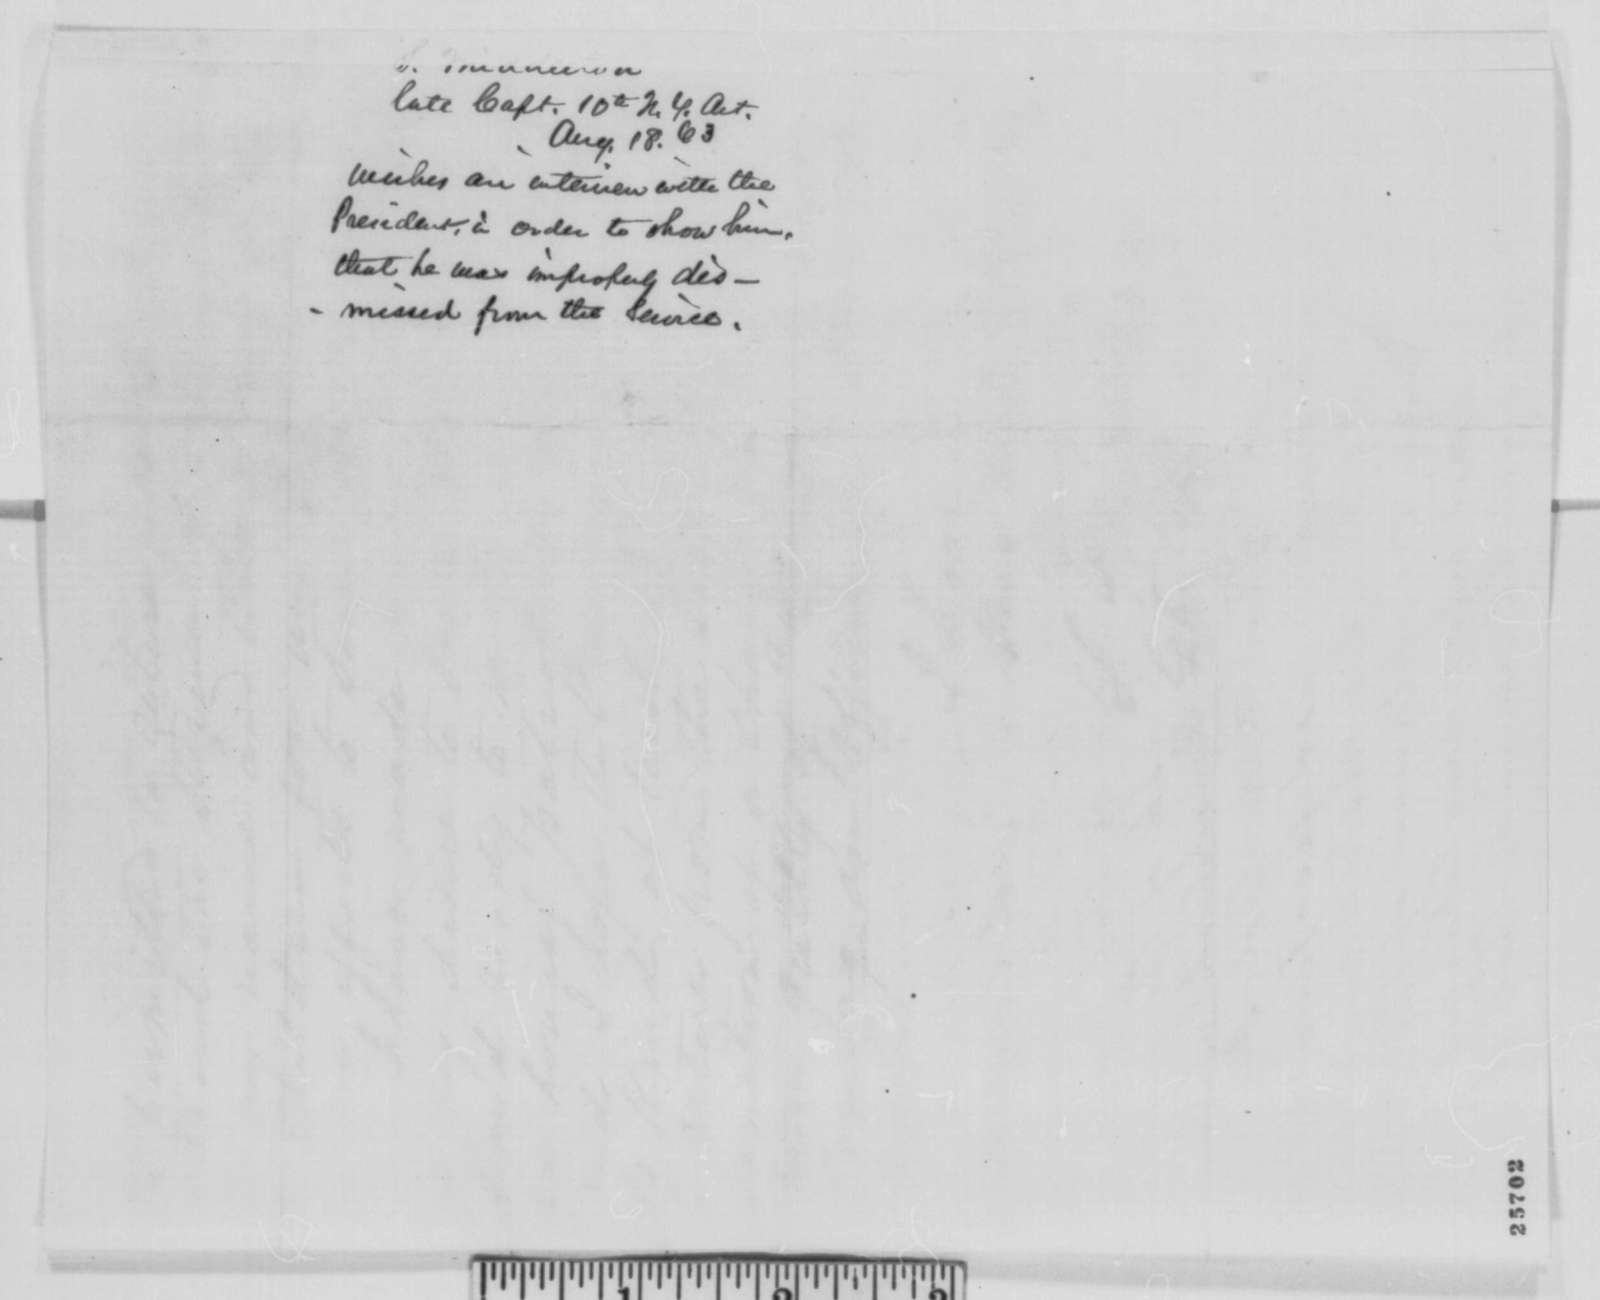 Samuel Middleton to Abraham Lincoln, Tuesday, August 18, 1863  (Seeks interview to discuss his case)